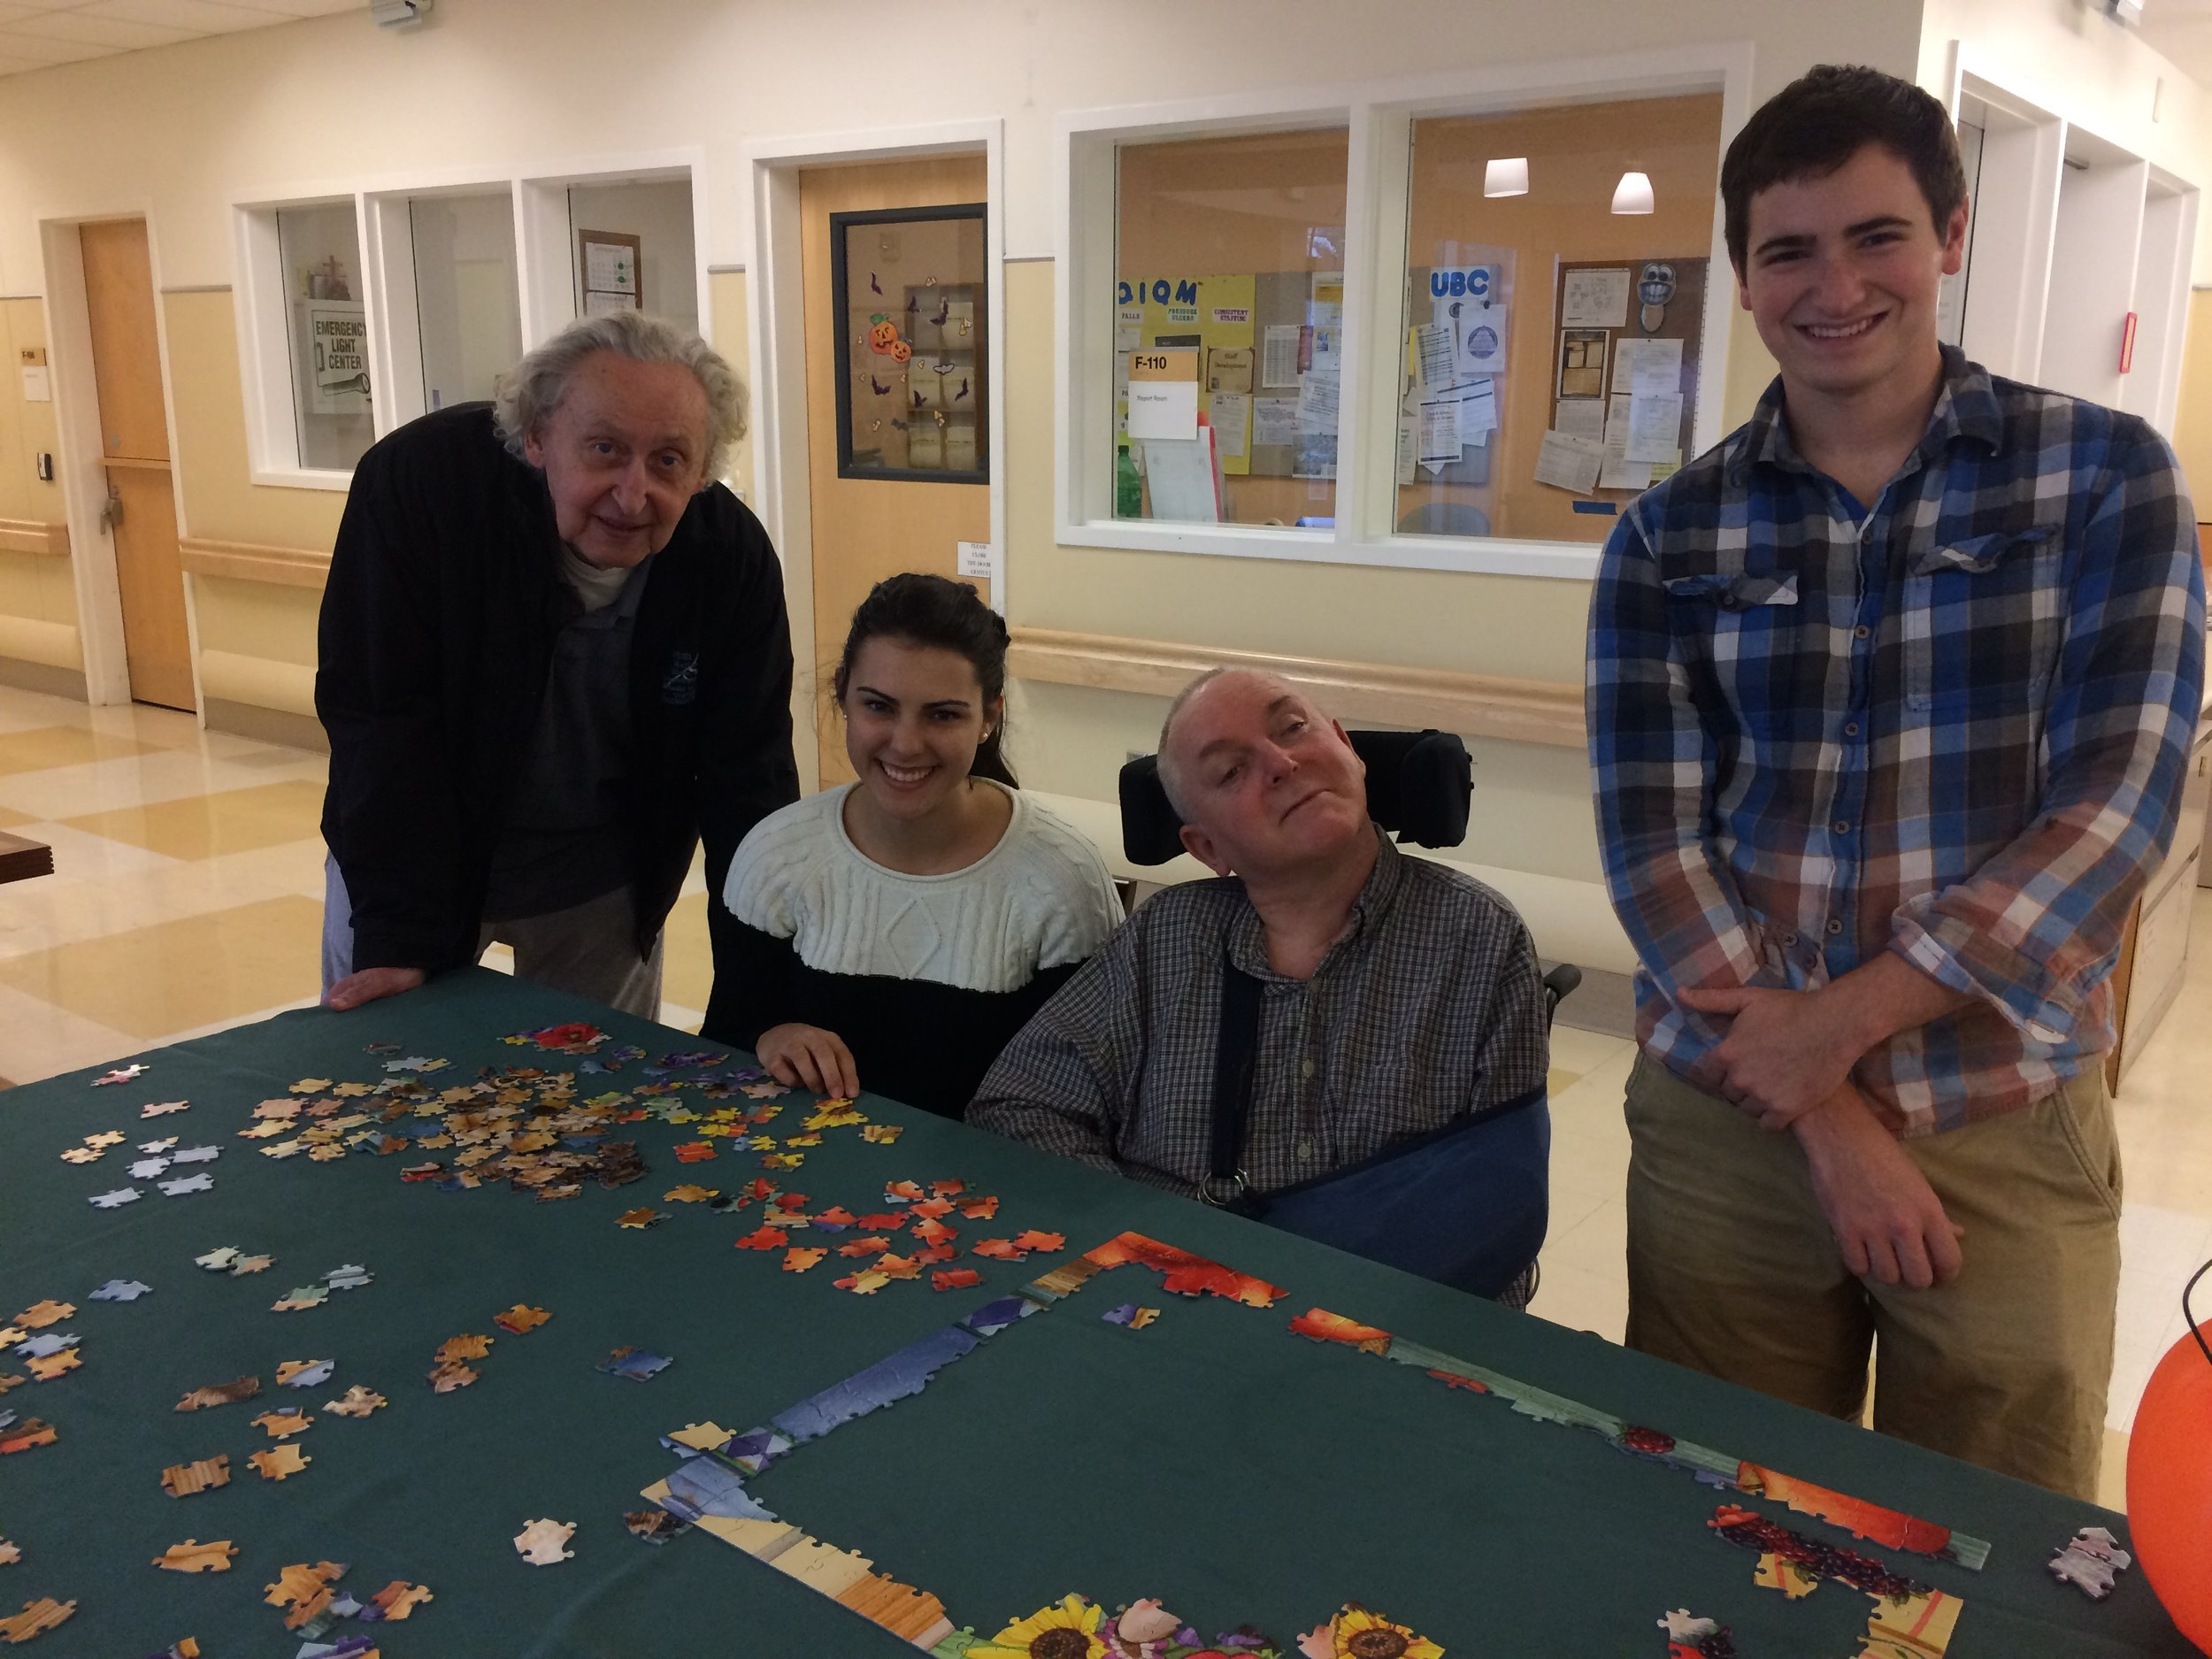 Volunteers building a puzzle with veterans at the Menlo Park Veteran's Hospital.